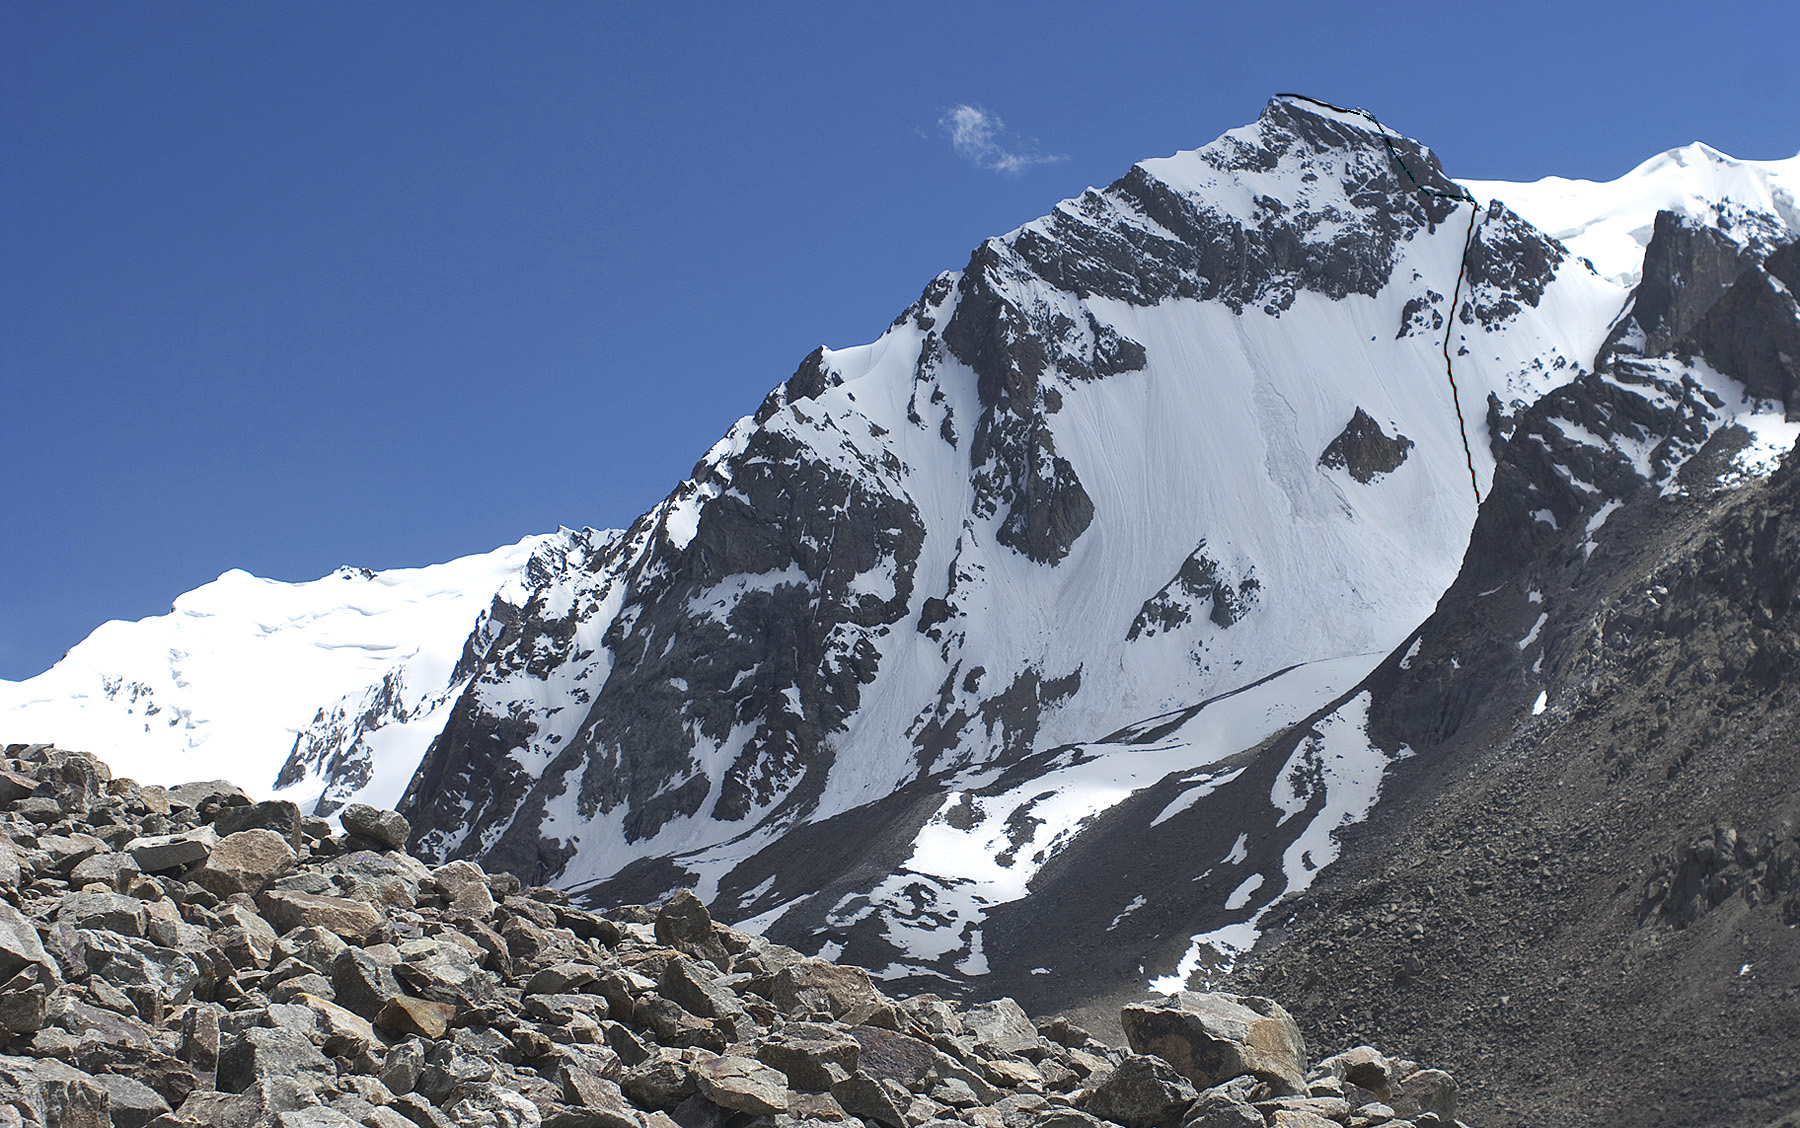 Koh-e-Atram from the Polish Glacier showing first ascent via north face and northwest ridge.